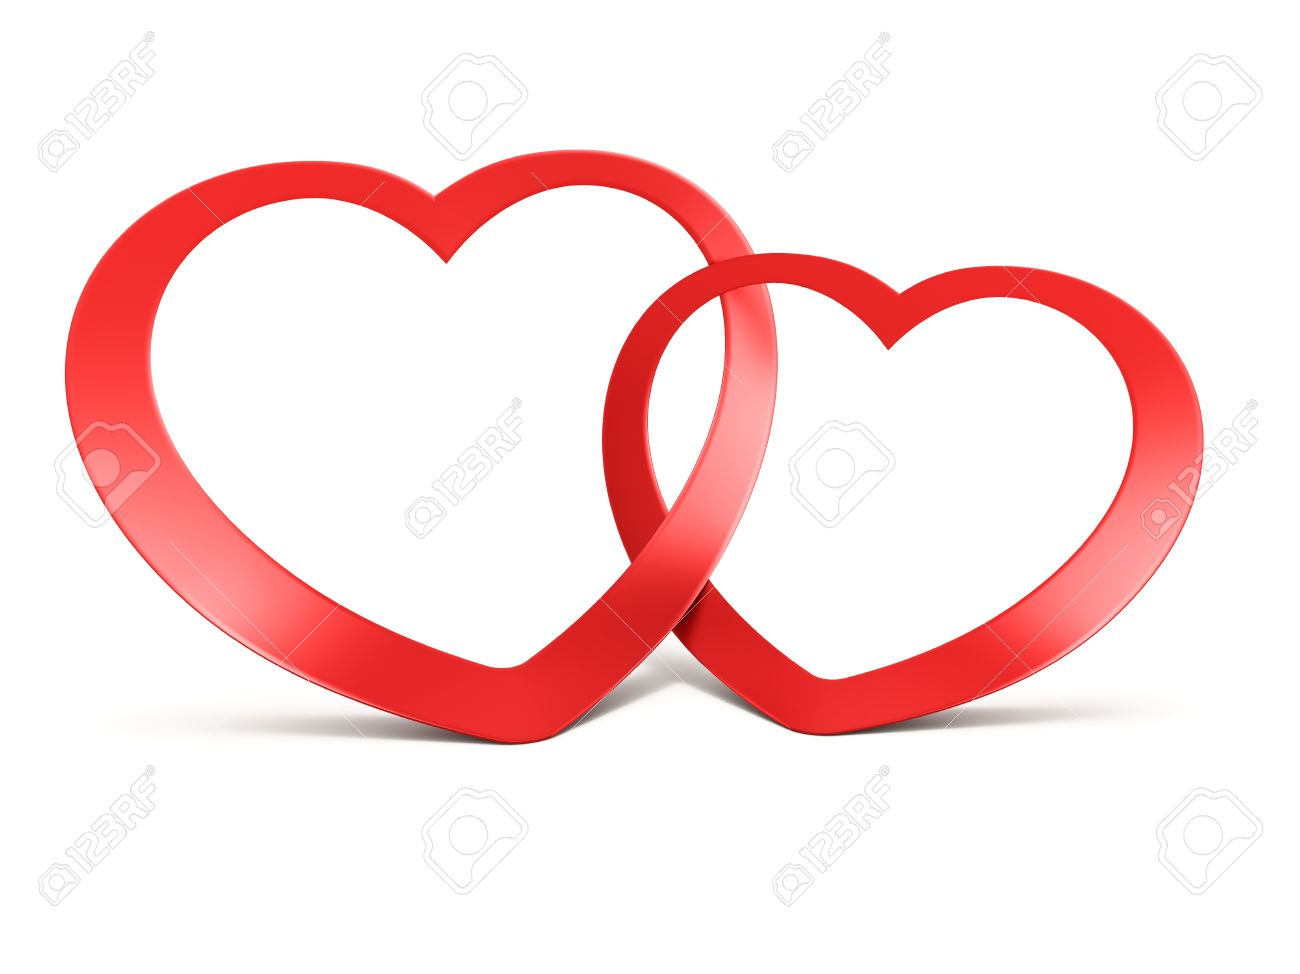 Clip Art Line Of Hearts : Two joined red hearts on white background stock photo picture and